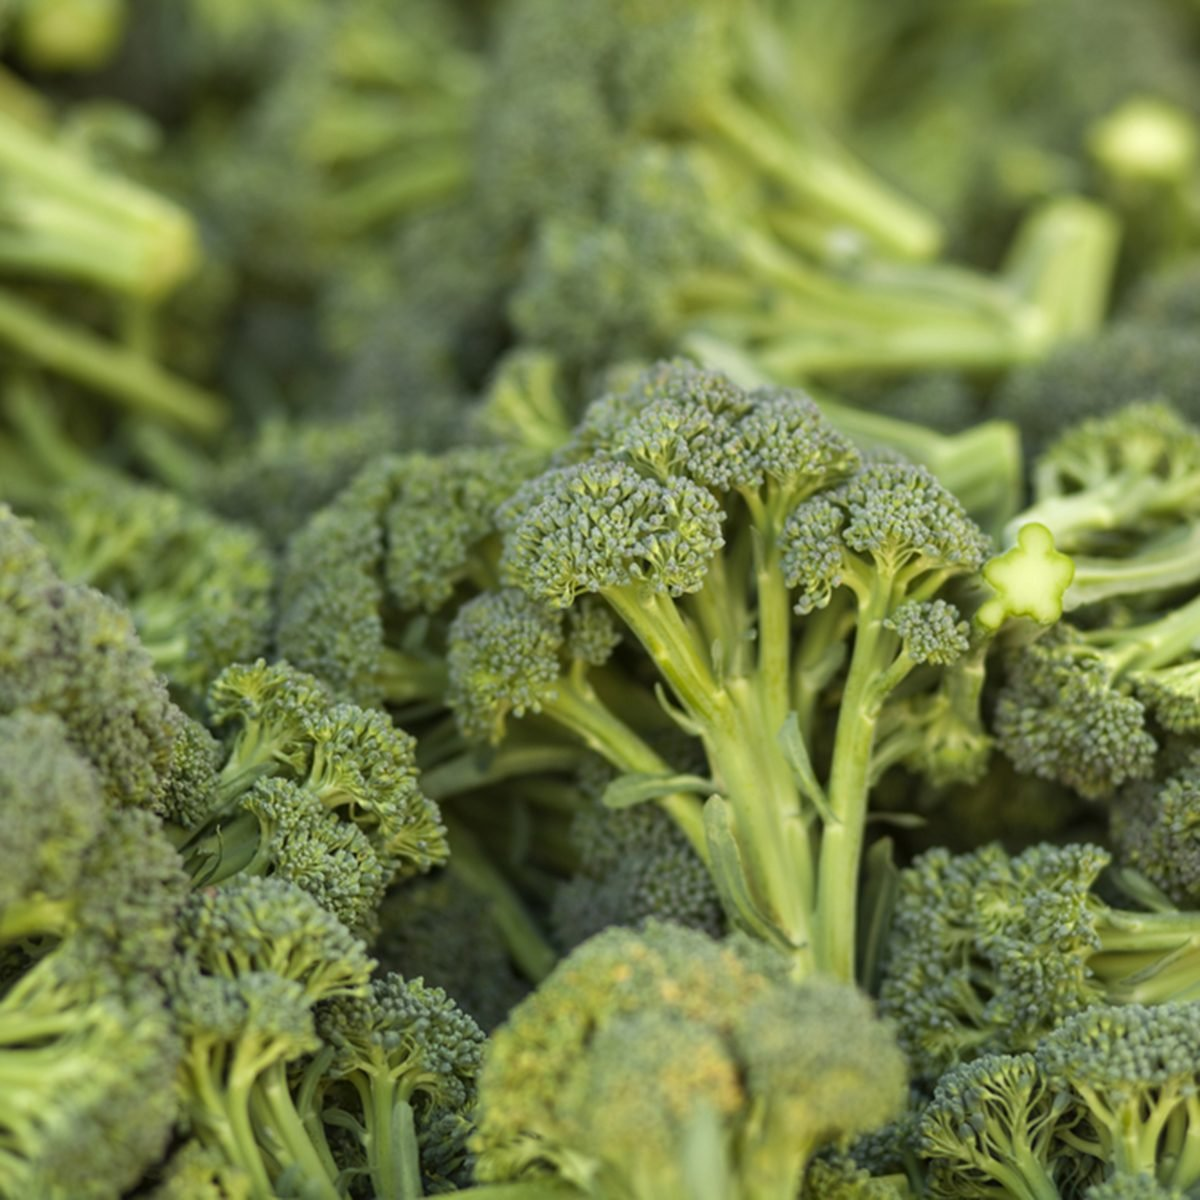 A pile of broccoli stalks at a market.